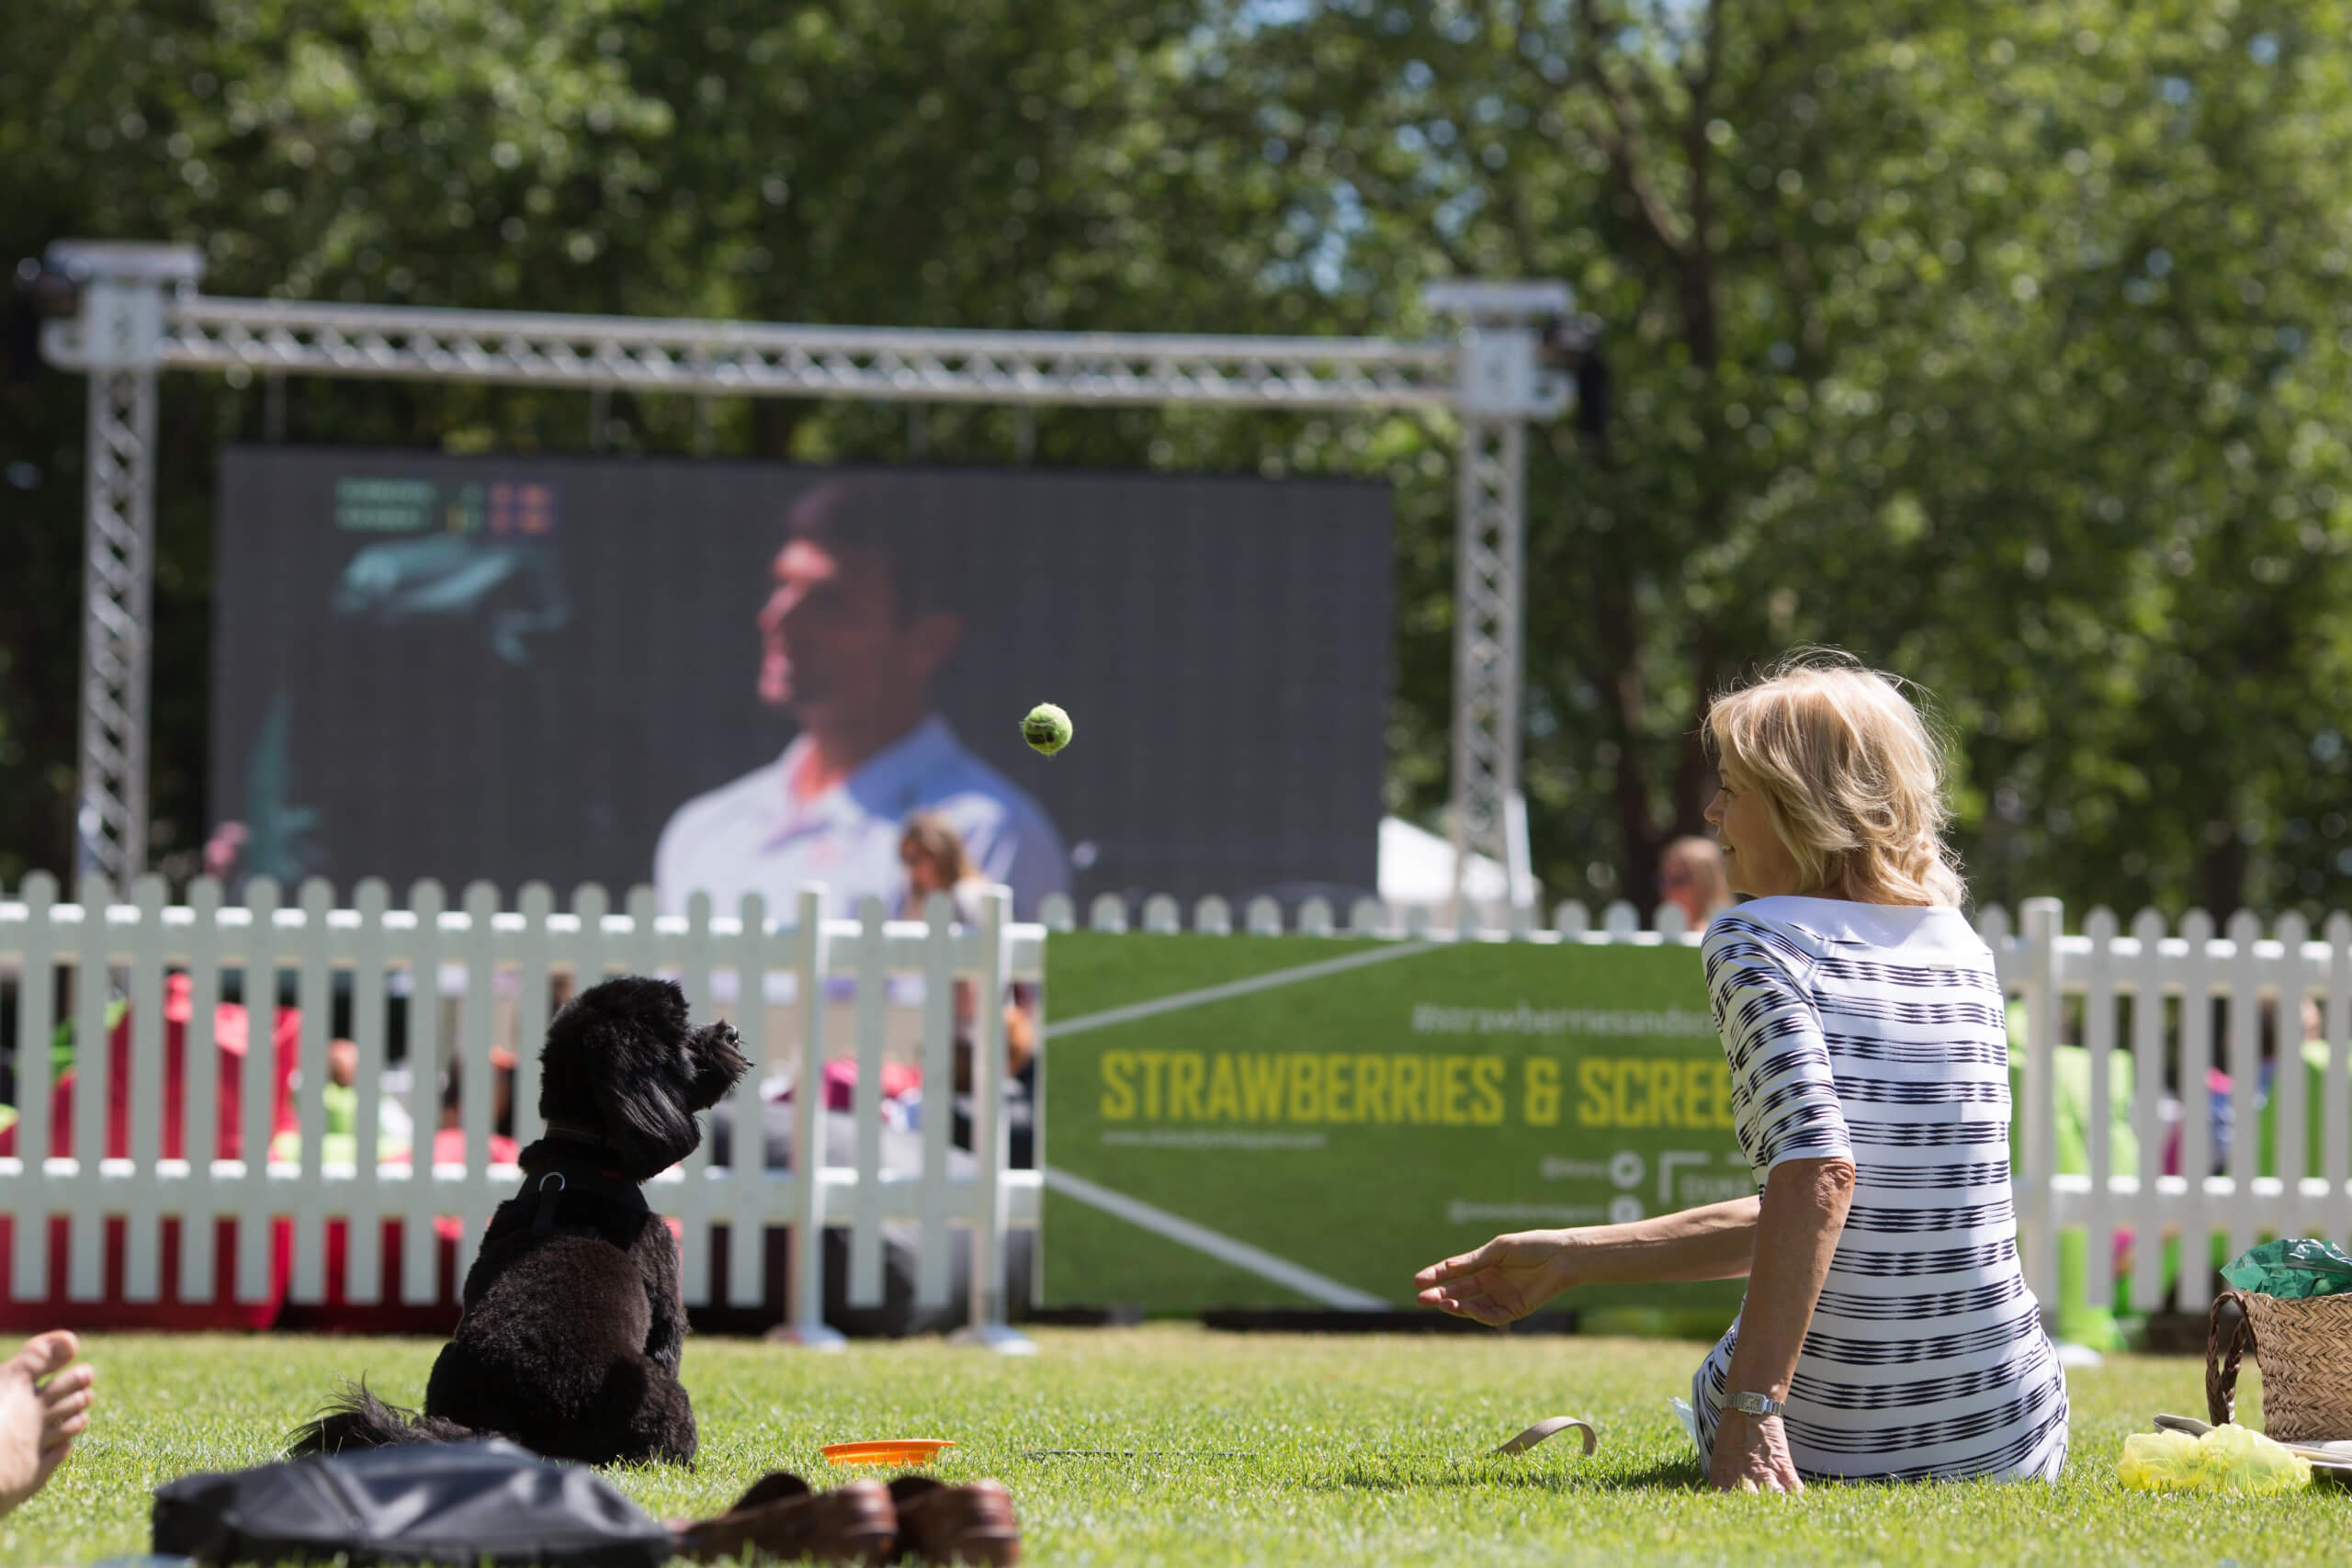 Where to Watch Wimbledon 2017, Where to Watch Wimbledon 2017 in London, best places to Watch Wimbledon 2017, Where to Watch Wimbledon 2017 london, Where to Watch Wimbledon this year, Where to Watch Wimbledon this year in London, wimbledon outdoor screenings, wimbledon outdoor screenings 2017